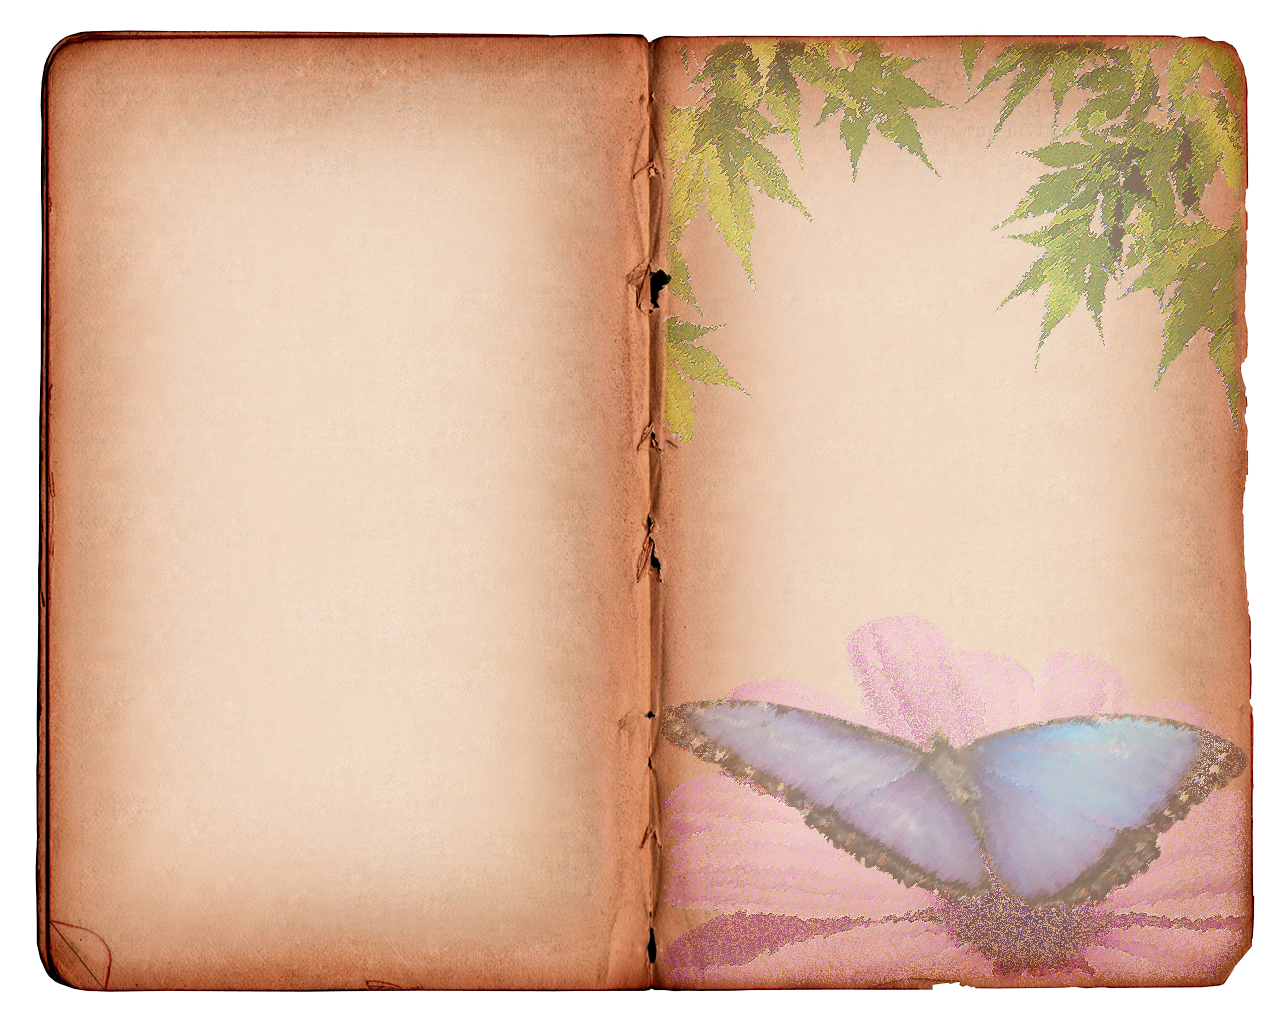 Old Book Photoshop Background Png image #24726